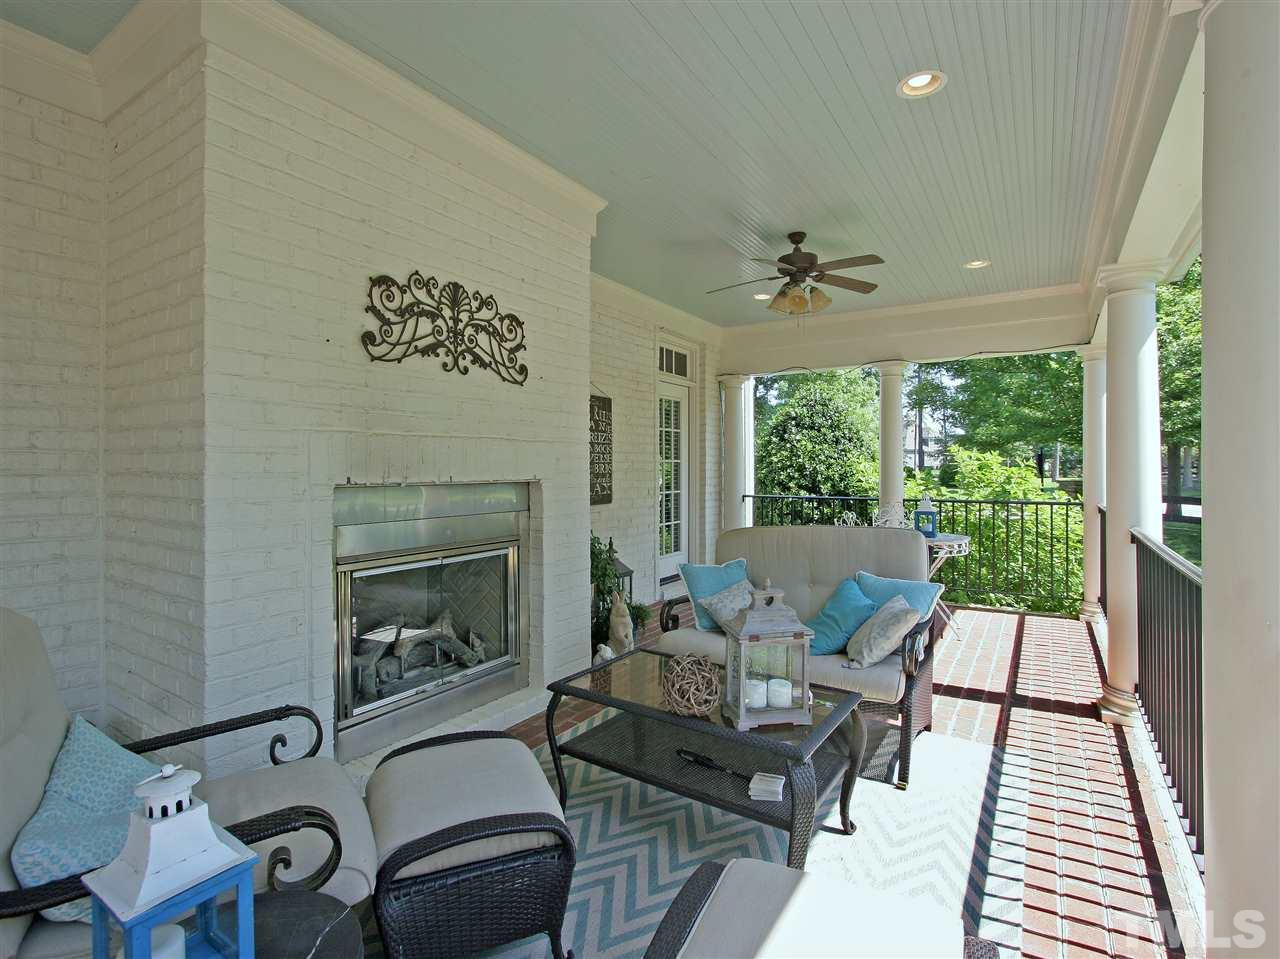 This south-facing covered porch has a cozy gas-log fireplace for the cooler months and ceiling fans for the warmer seasons. Enjoy it year 'round. Stately columns, wrought iron railings, and historically accurate paint choices carry the Charleston theme.